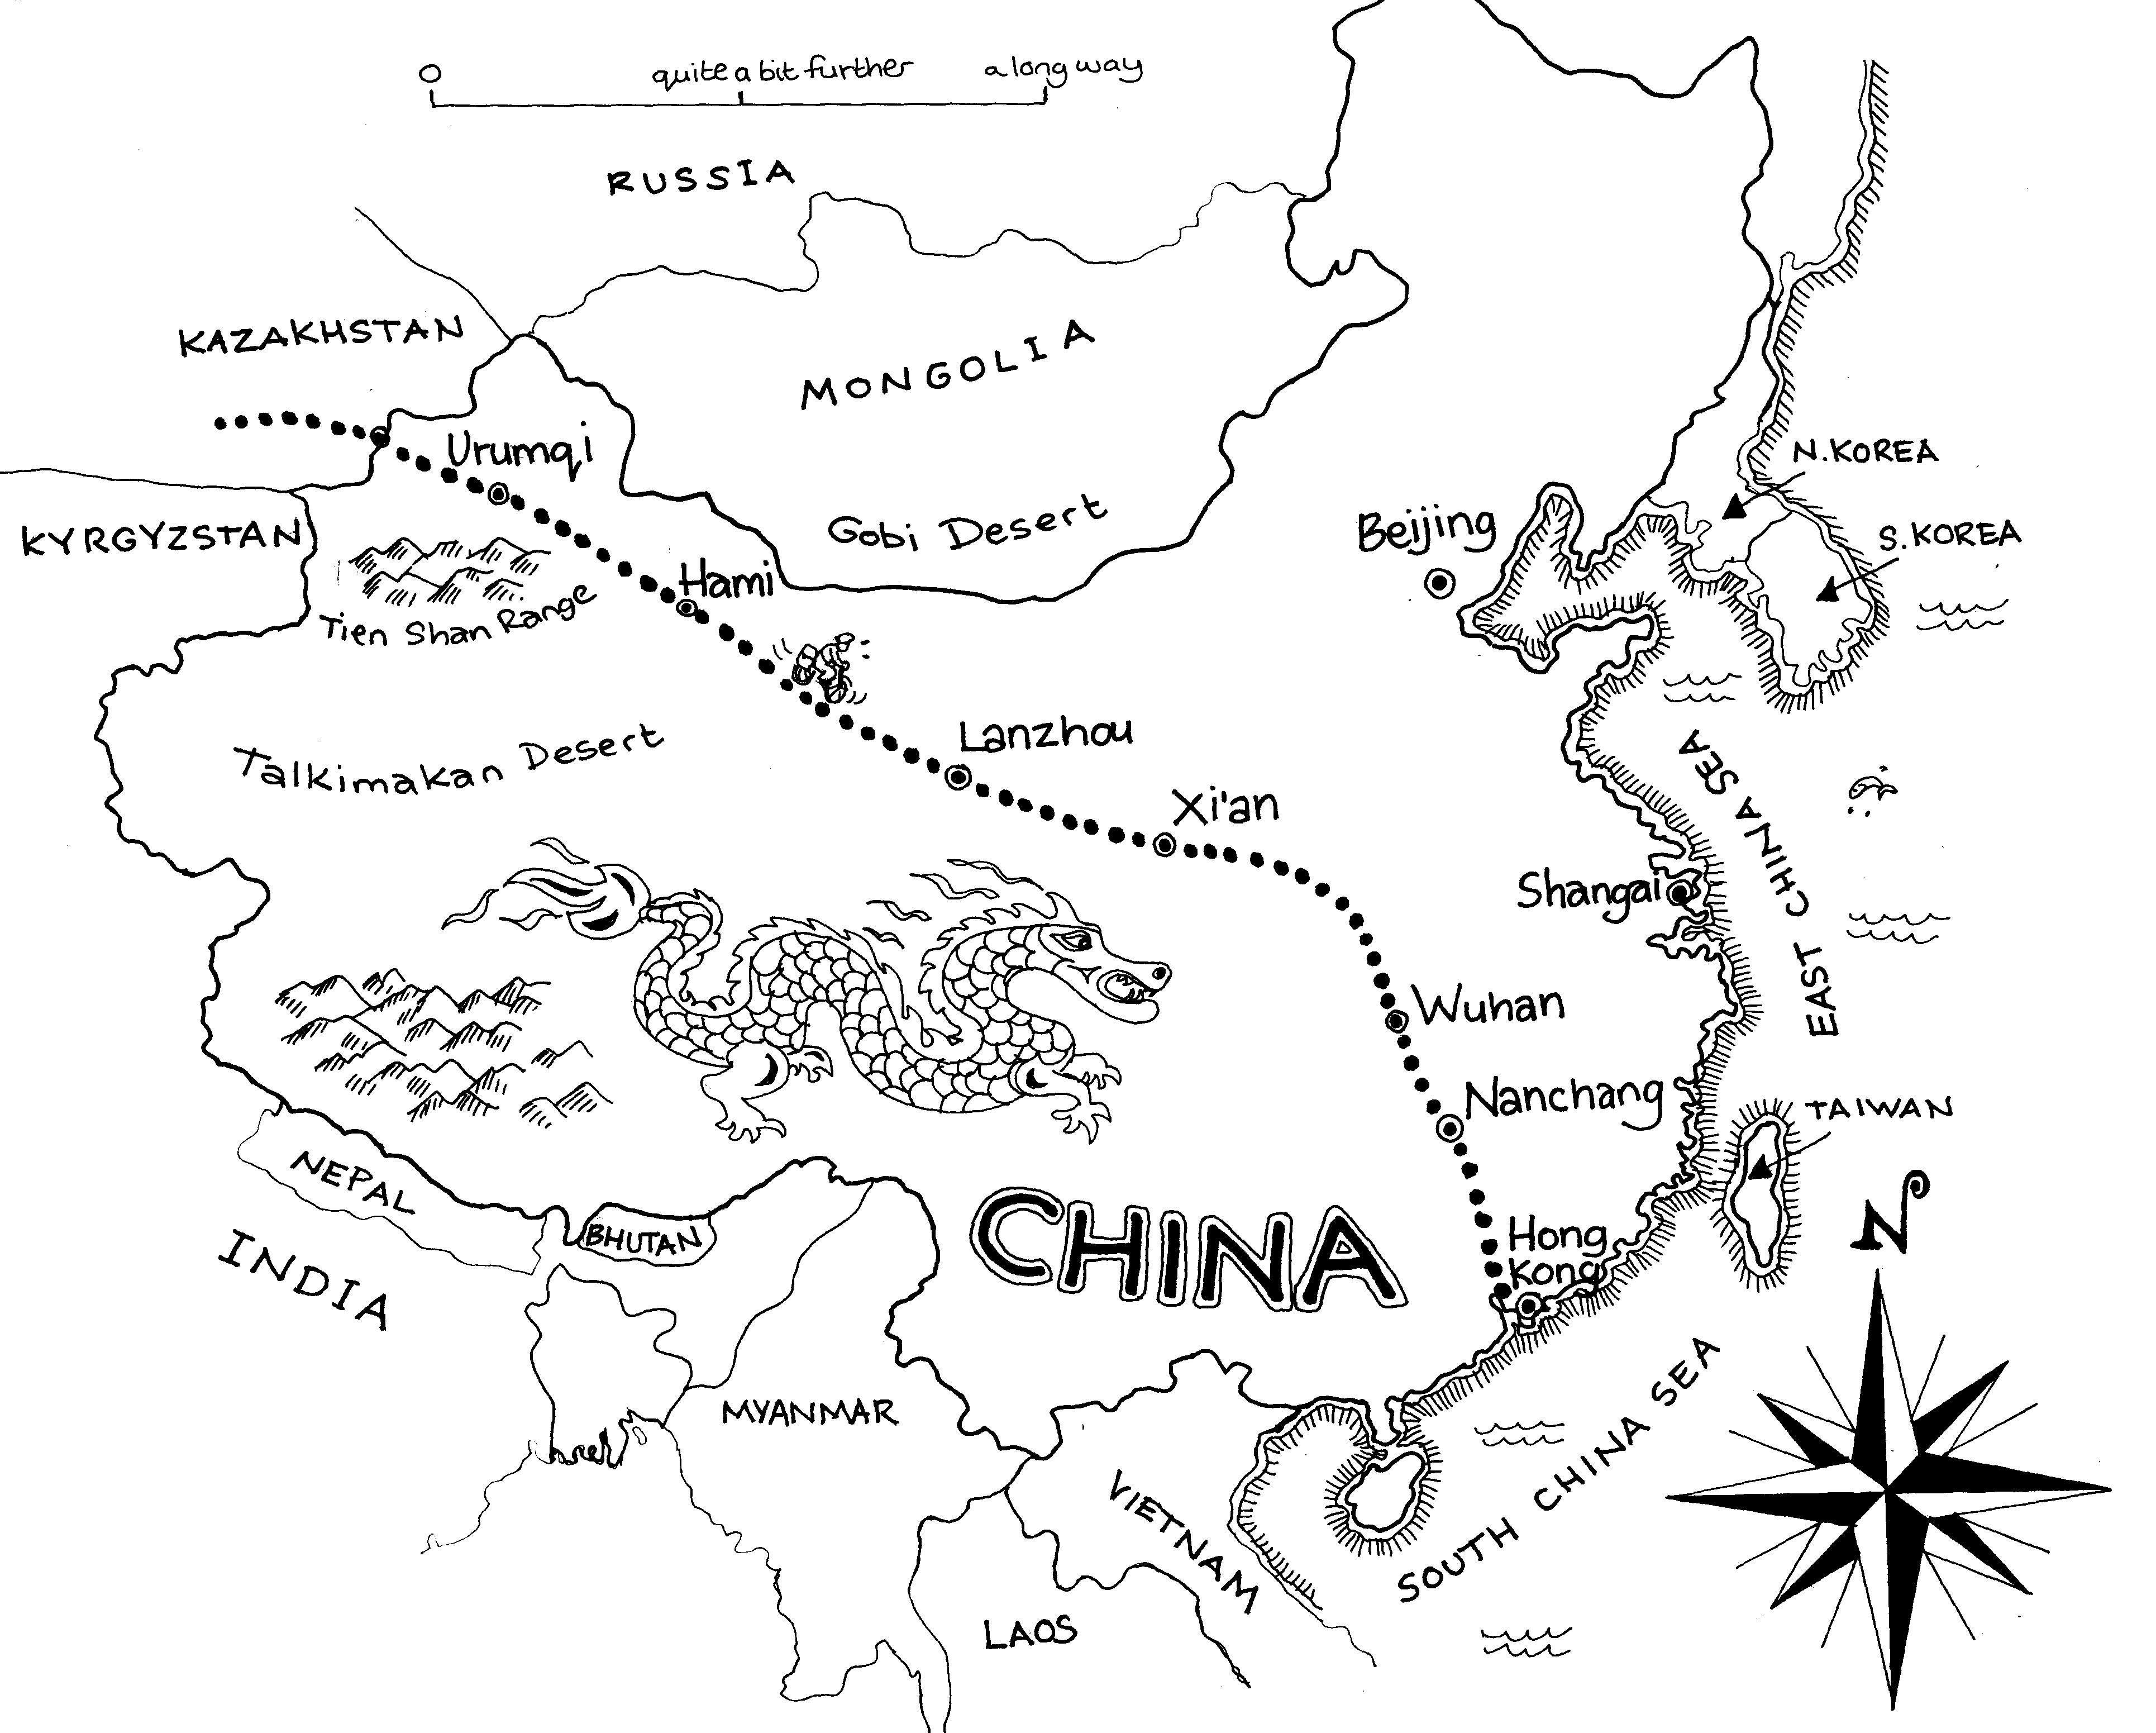 China Map Puzzle Worksheet Printable Worksheets And Activities For Teachers Parents Tutors And Homeschool Families